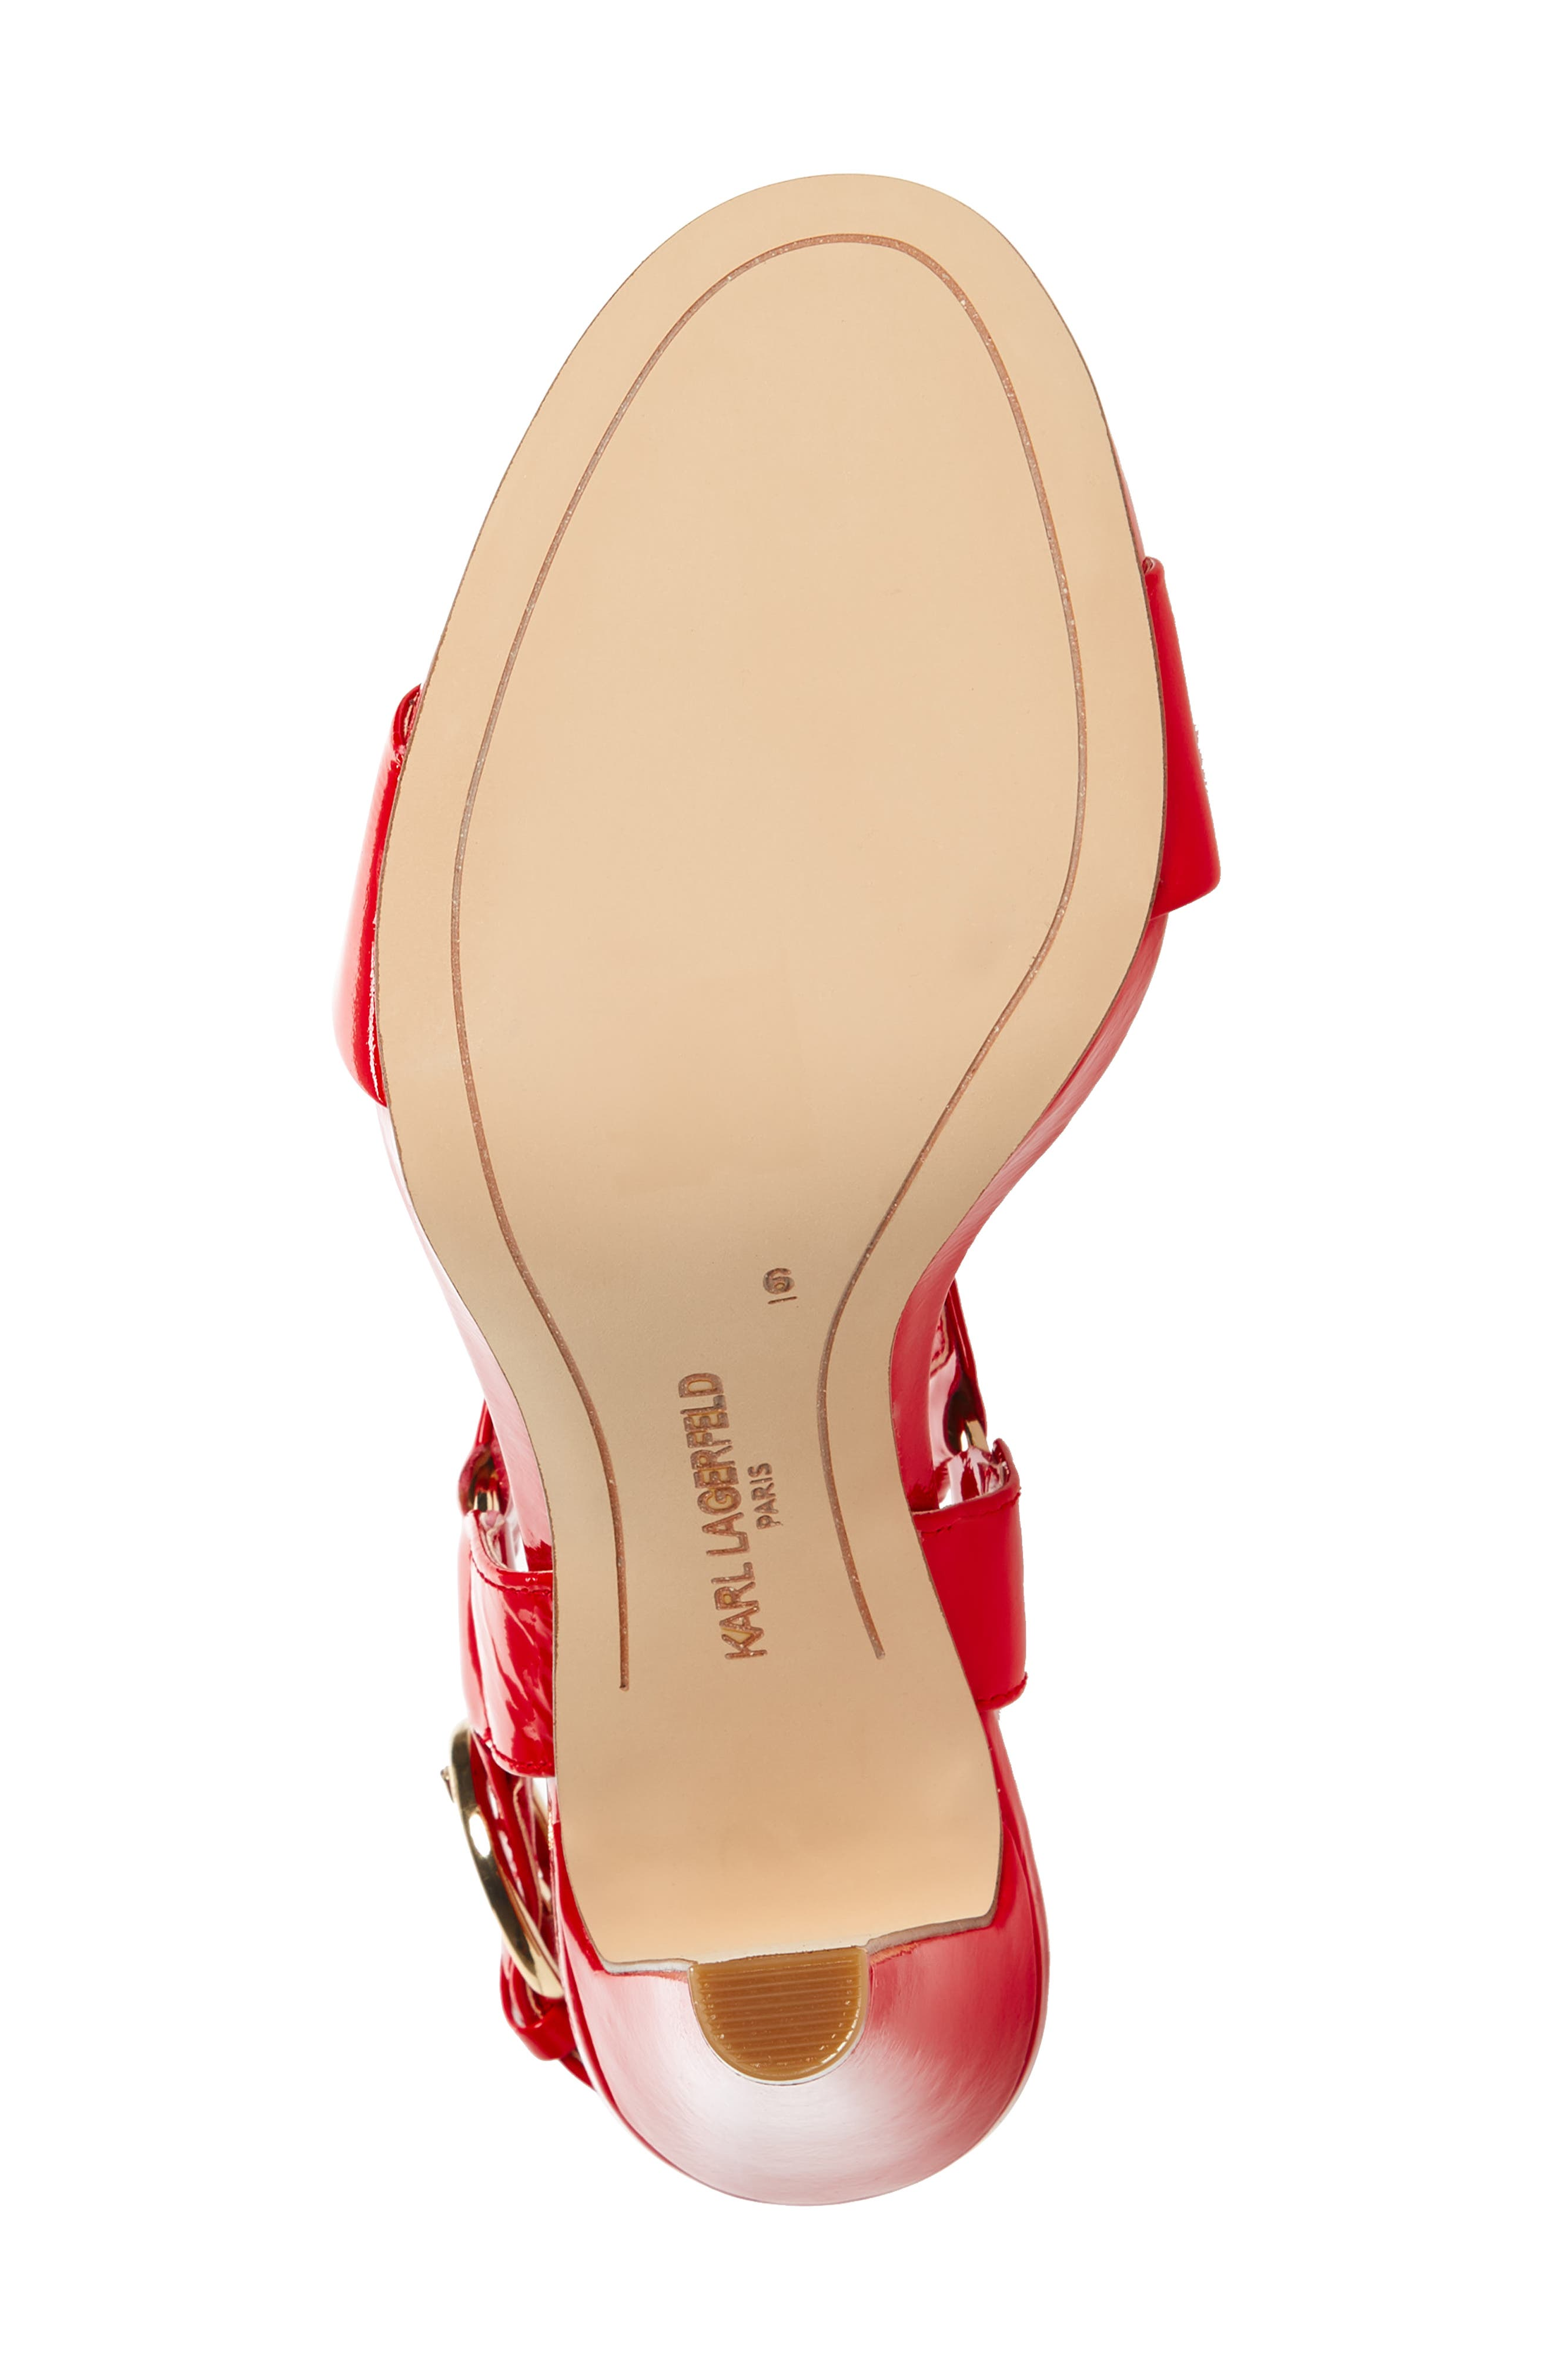 Cieone Sandal,                             Alternate thumbnail 6, color,                             RED PATENT